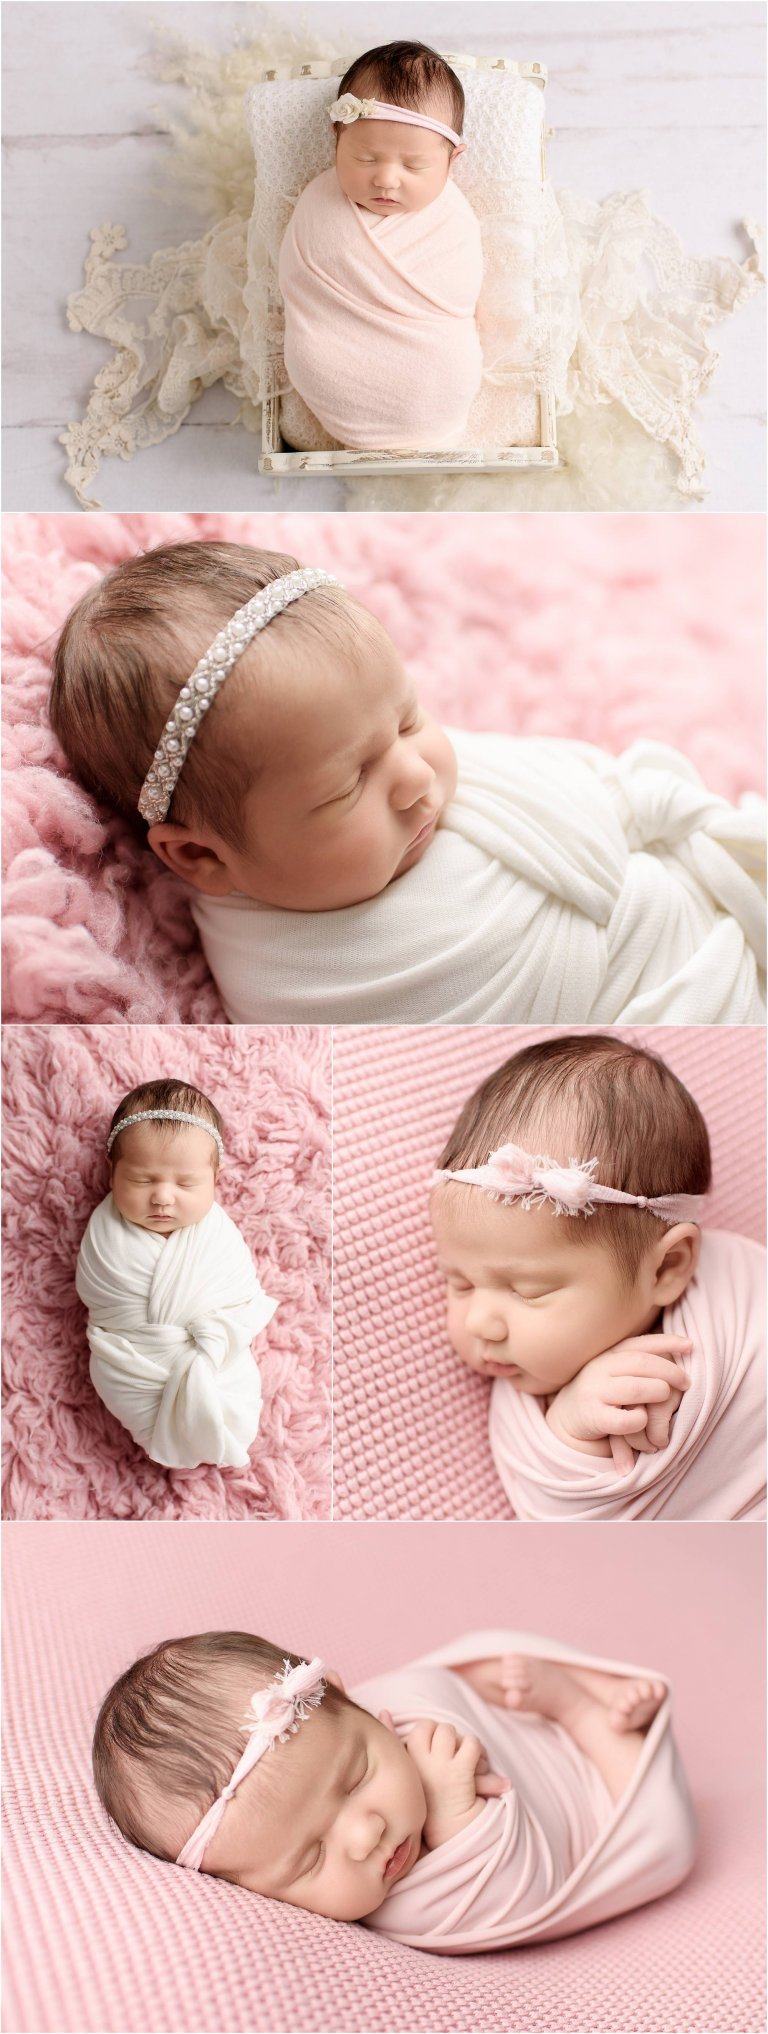 newborn photographer moscow pa captures baby girl posed on pink fur and swaddled